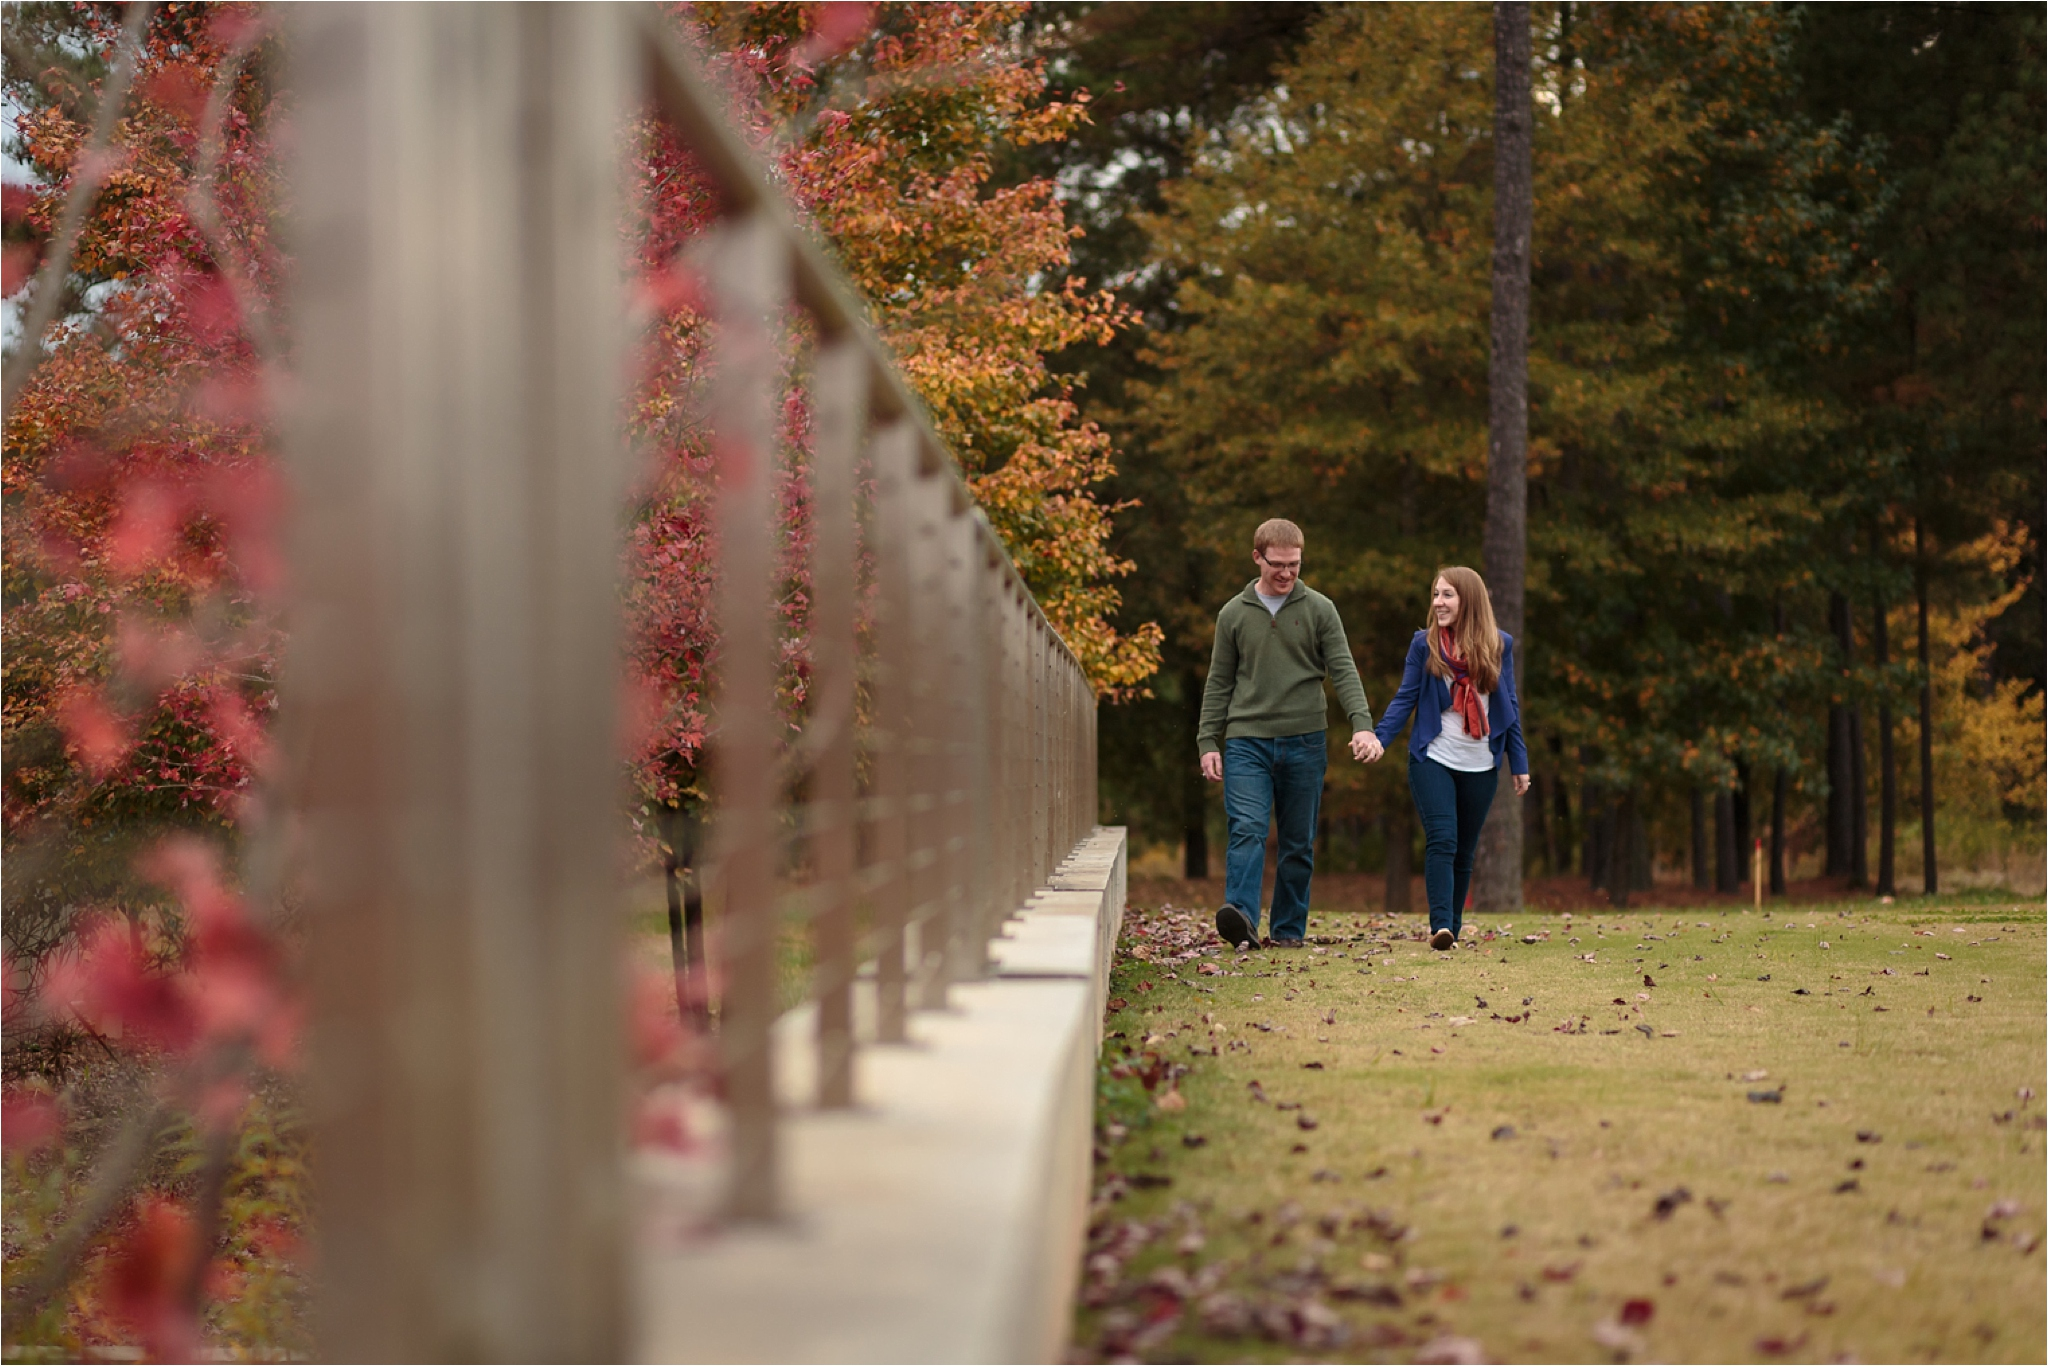 greenville-engagement-session-fall-colors-11_blog.jpg